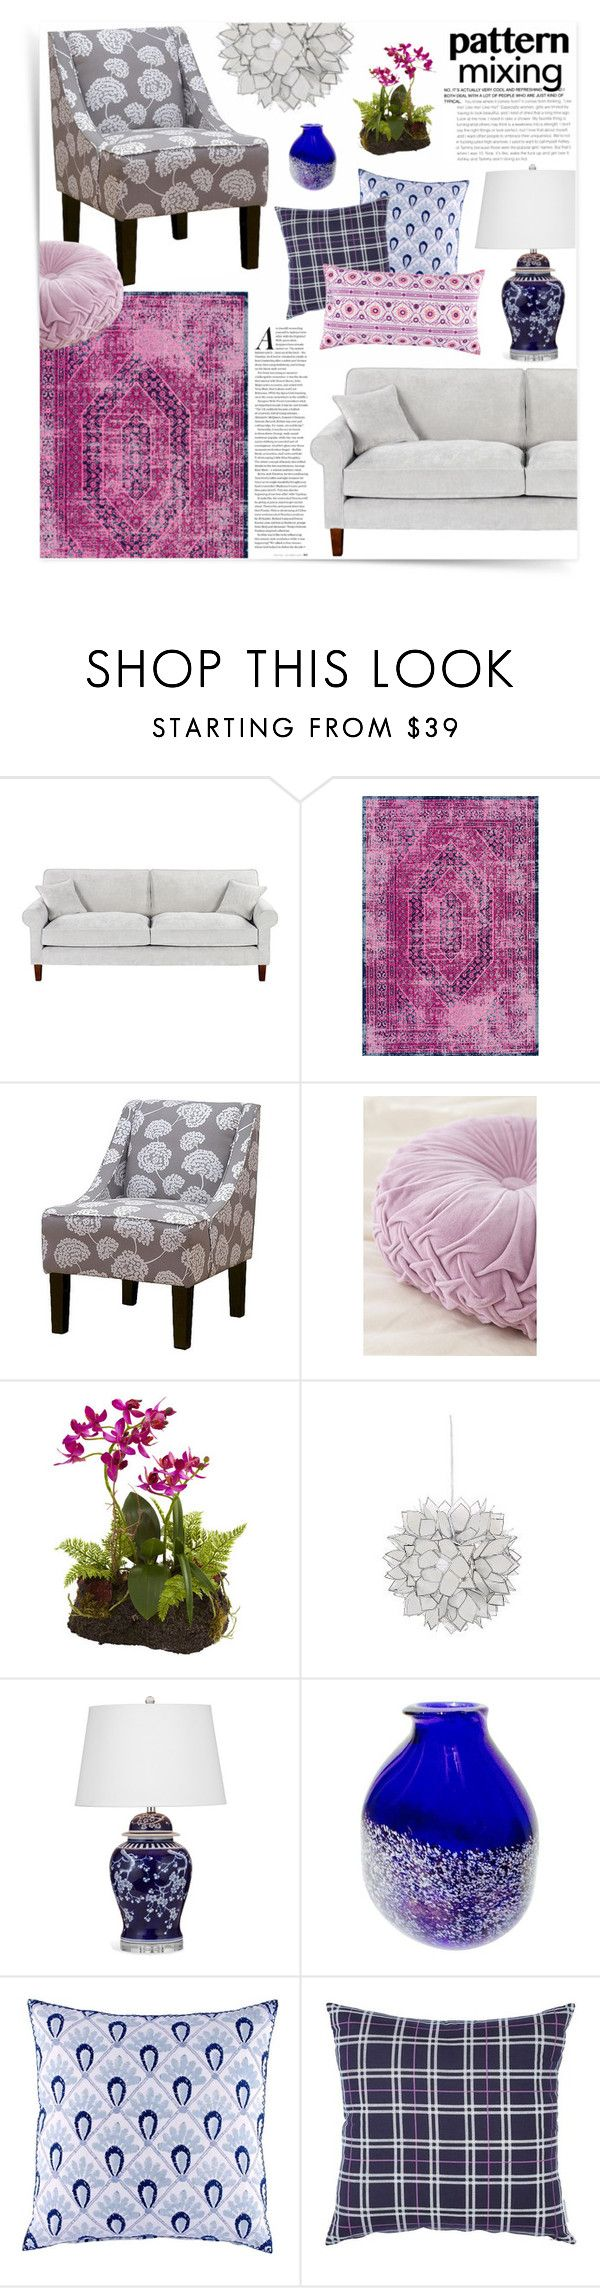 """""""Pattern Mixing At Home"""" by katrinaalice on Polyvore featuring interior, interiors, interior design, home, home decor, interior decorating, See by Chloé, nuLOOM, Urban Outfitters and Chandelier"""